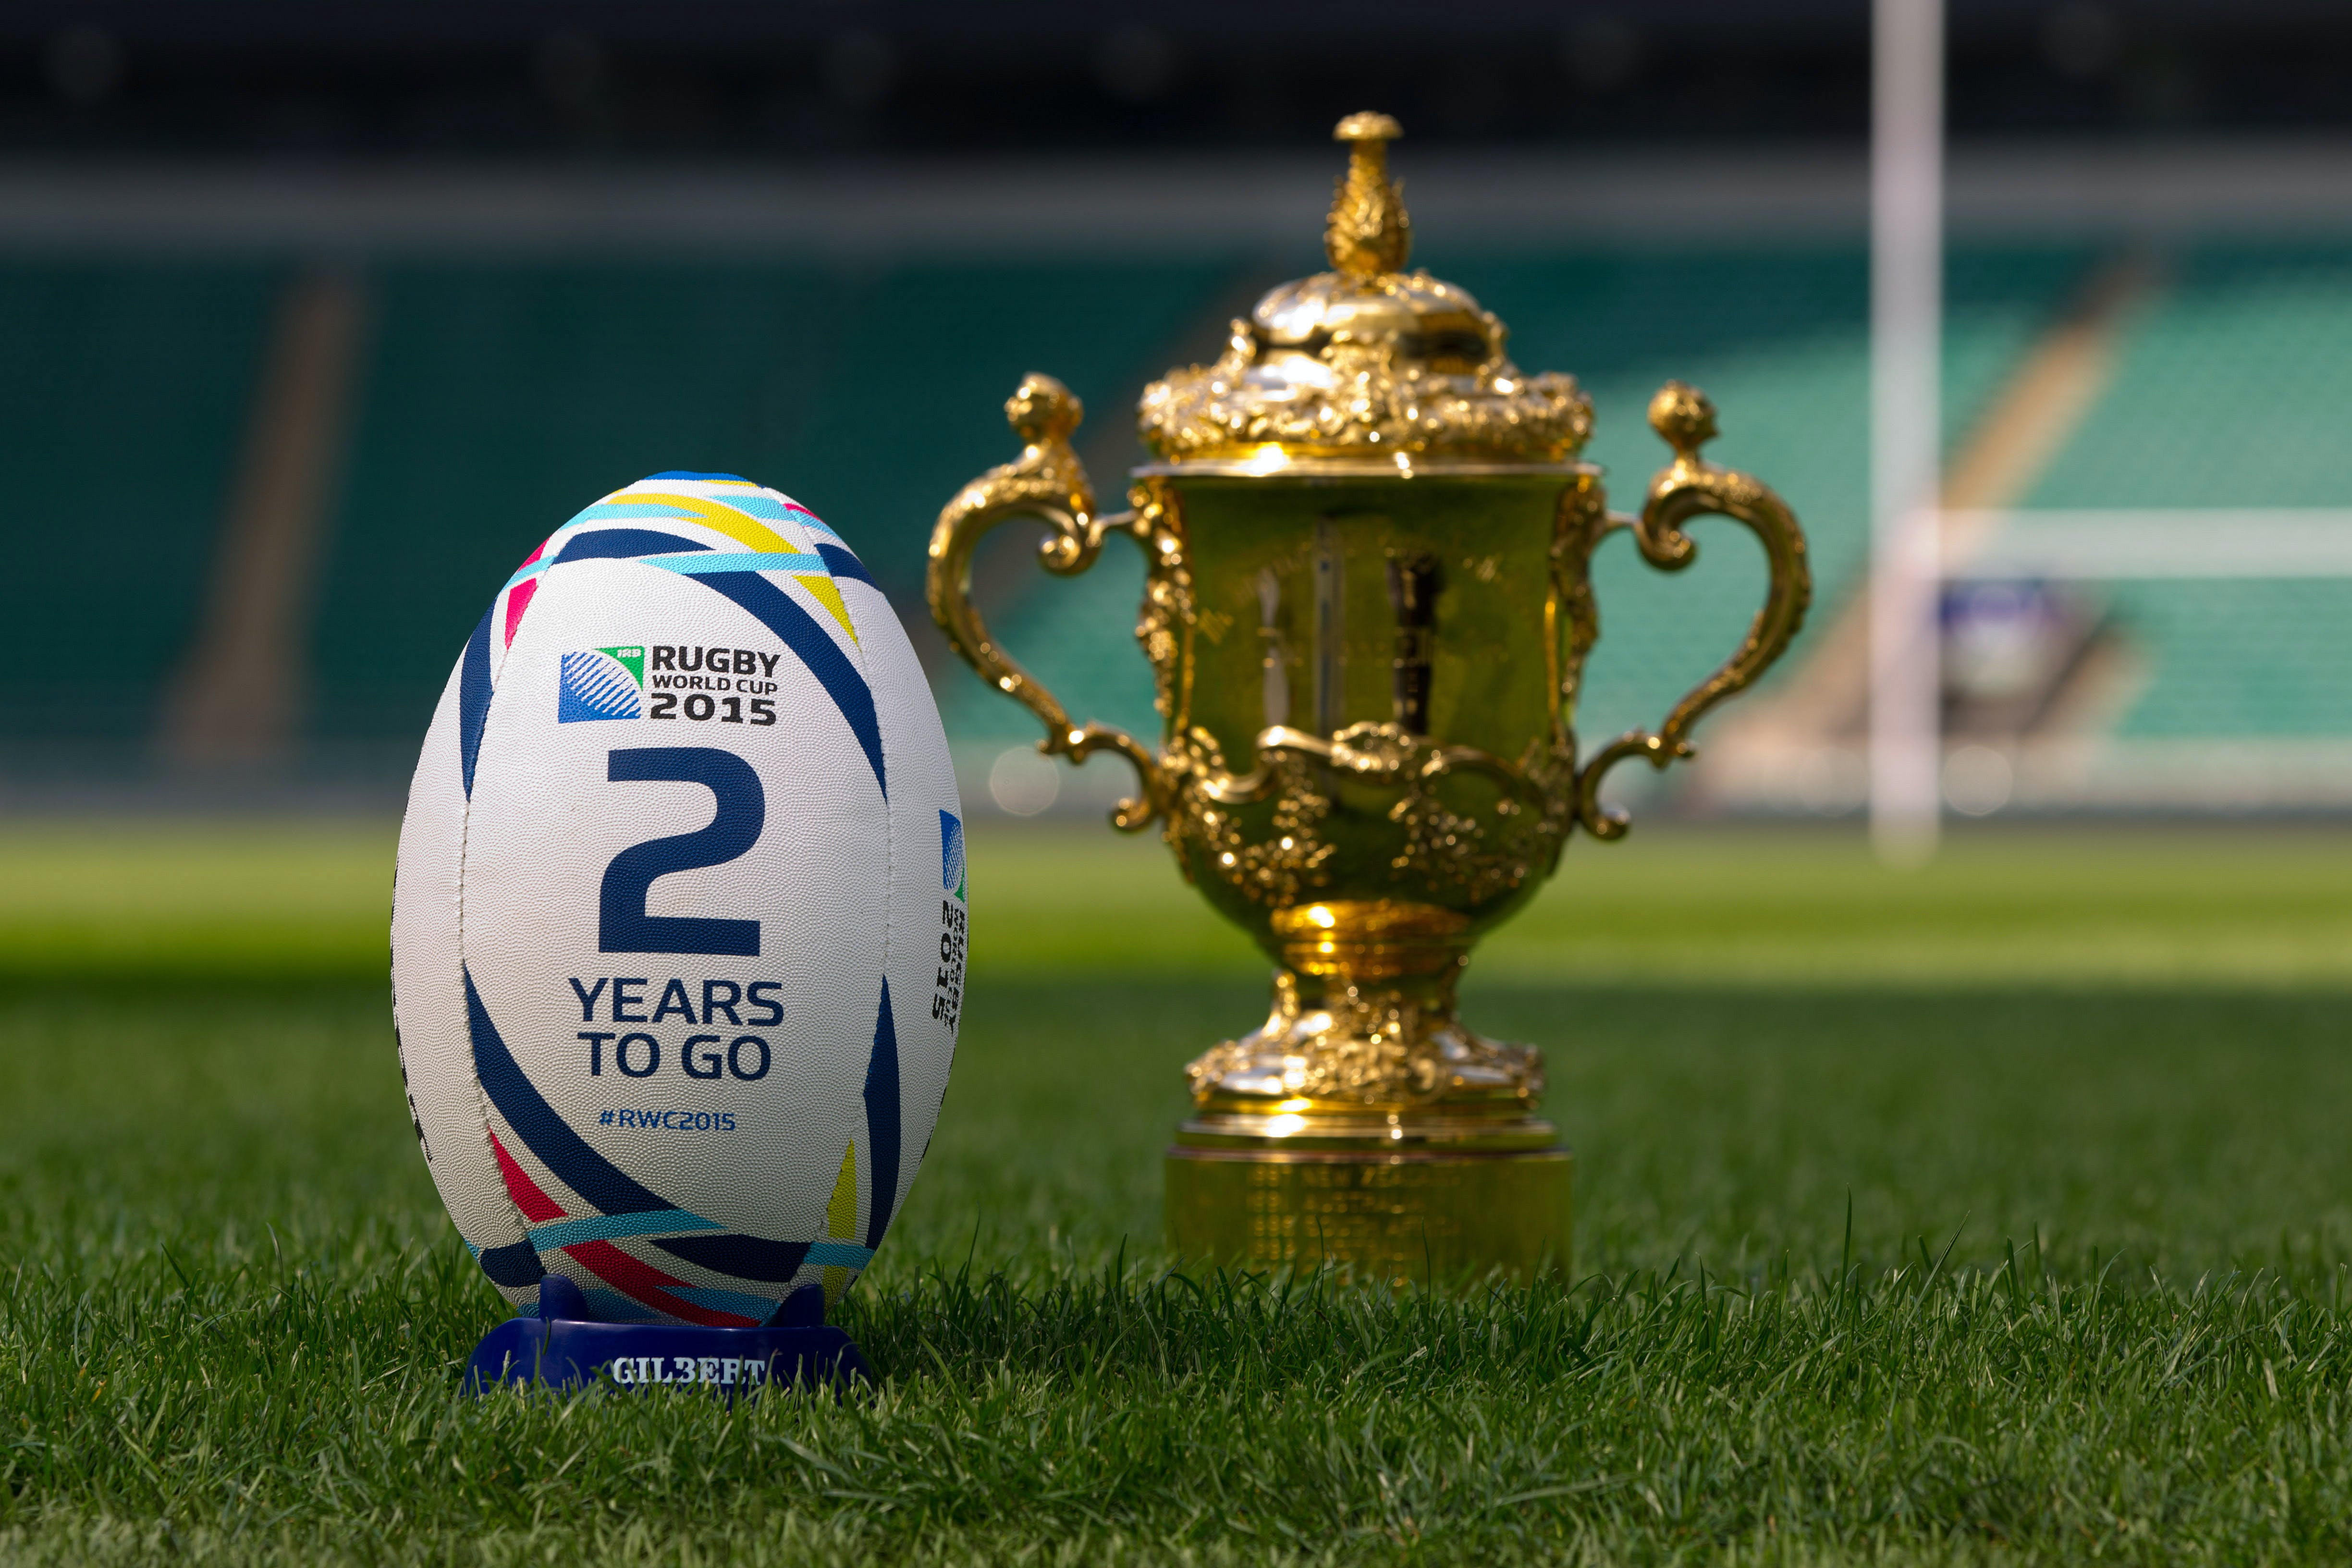 Rugby World Cup The Lawyers Picking Up Ball Lawyer Legal Insight Benchmarking Data And Jobs